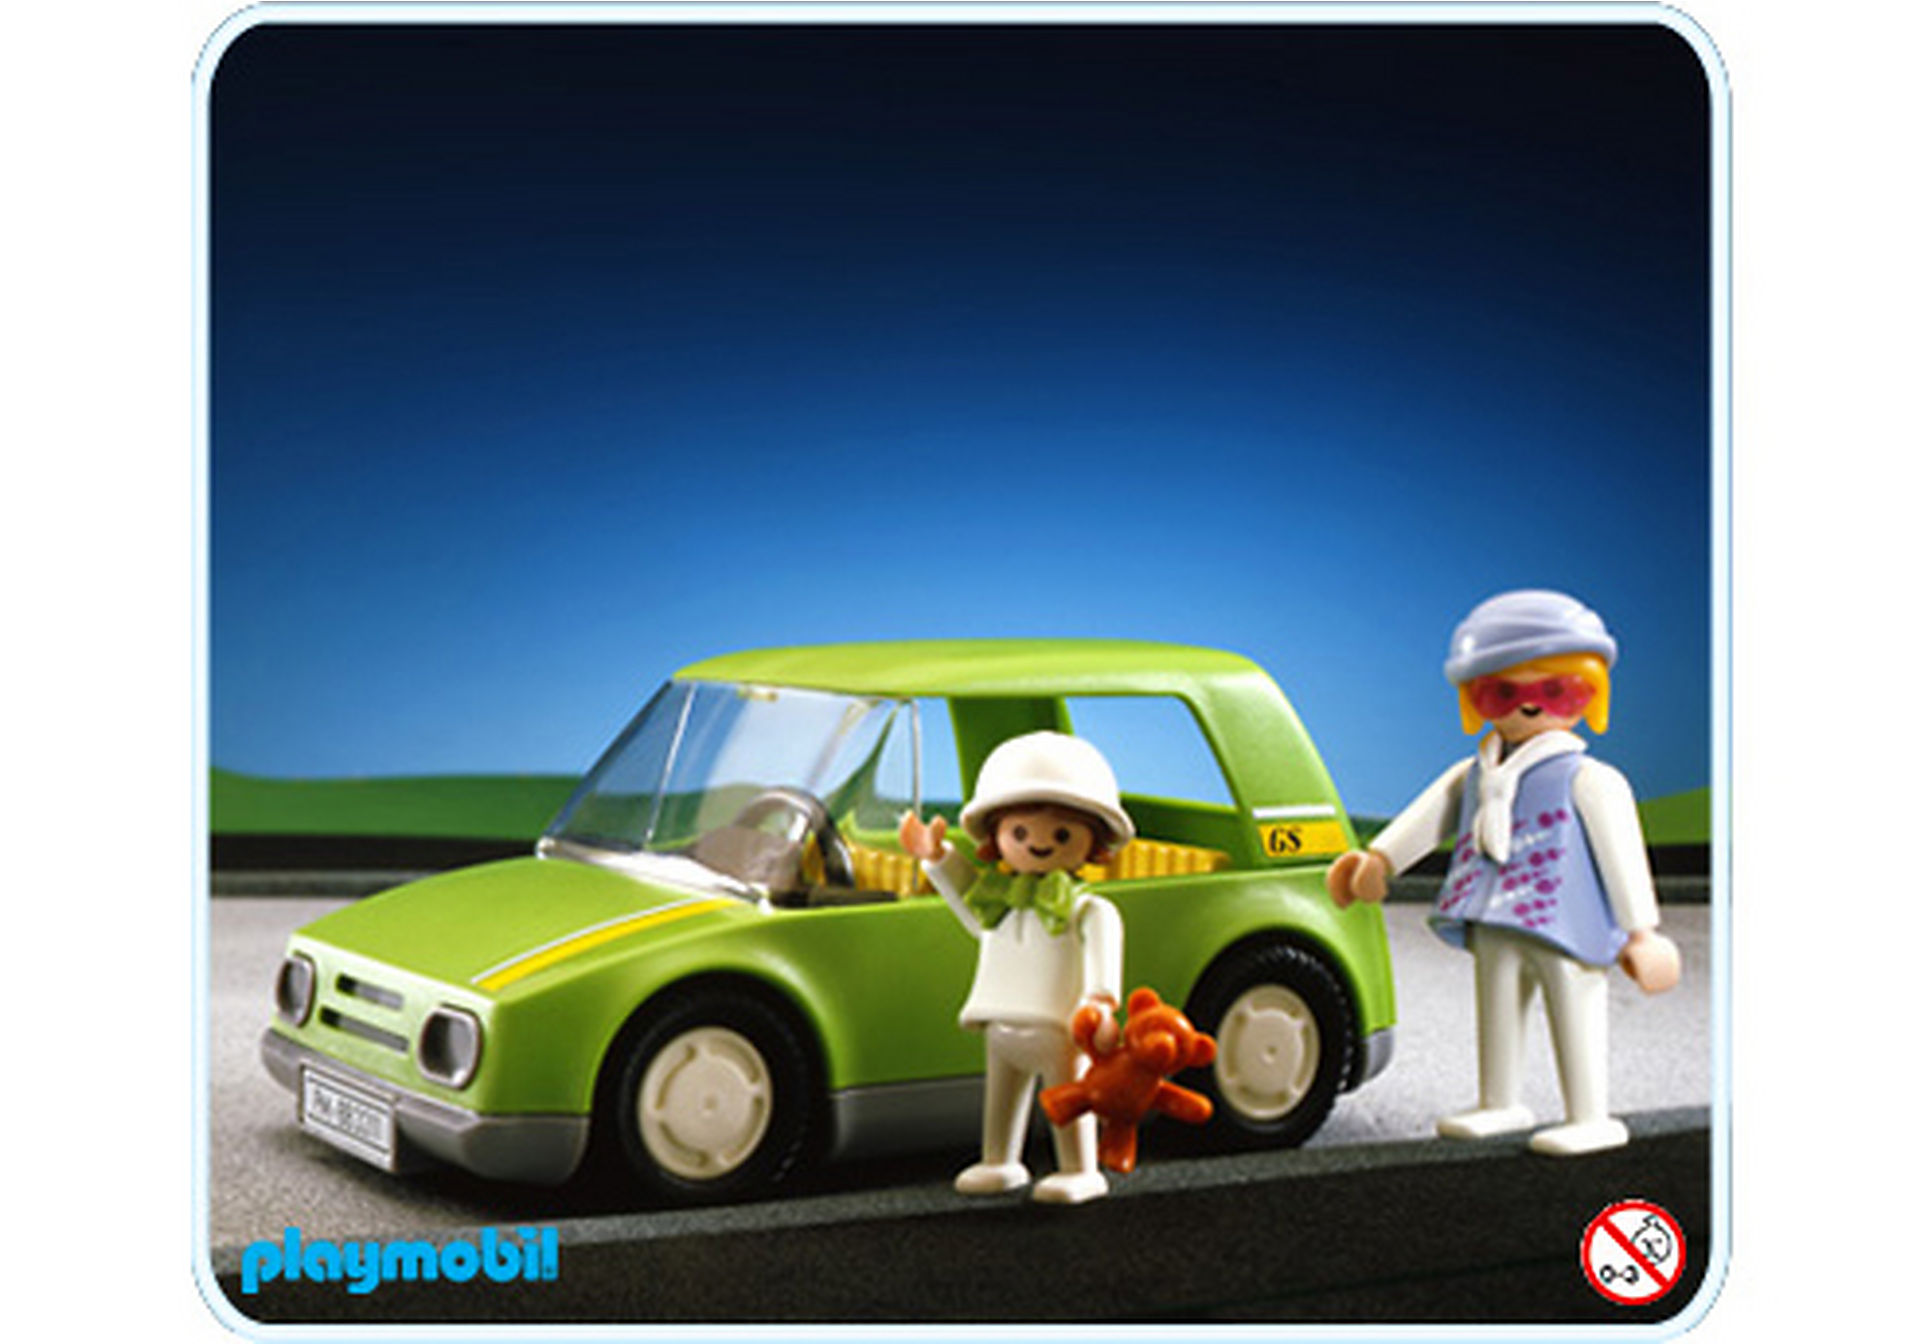 http://media.playmobil.com/i/playmobil/3211-B_product_detail/Citycar